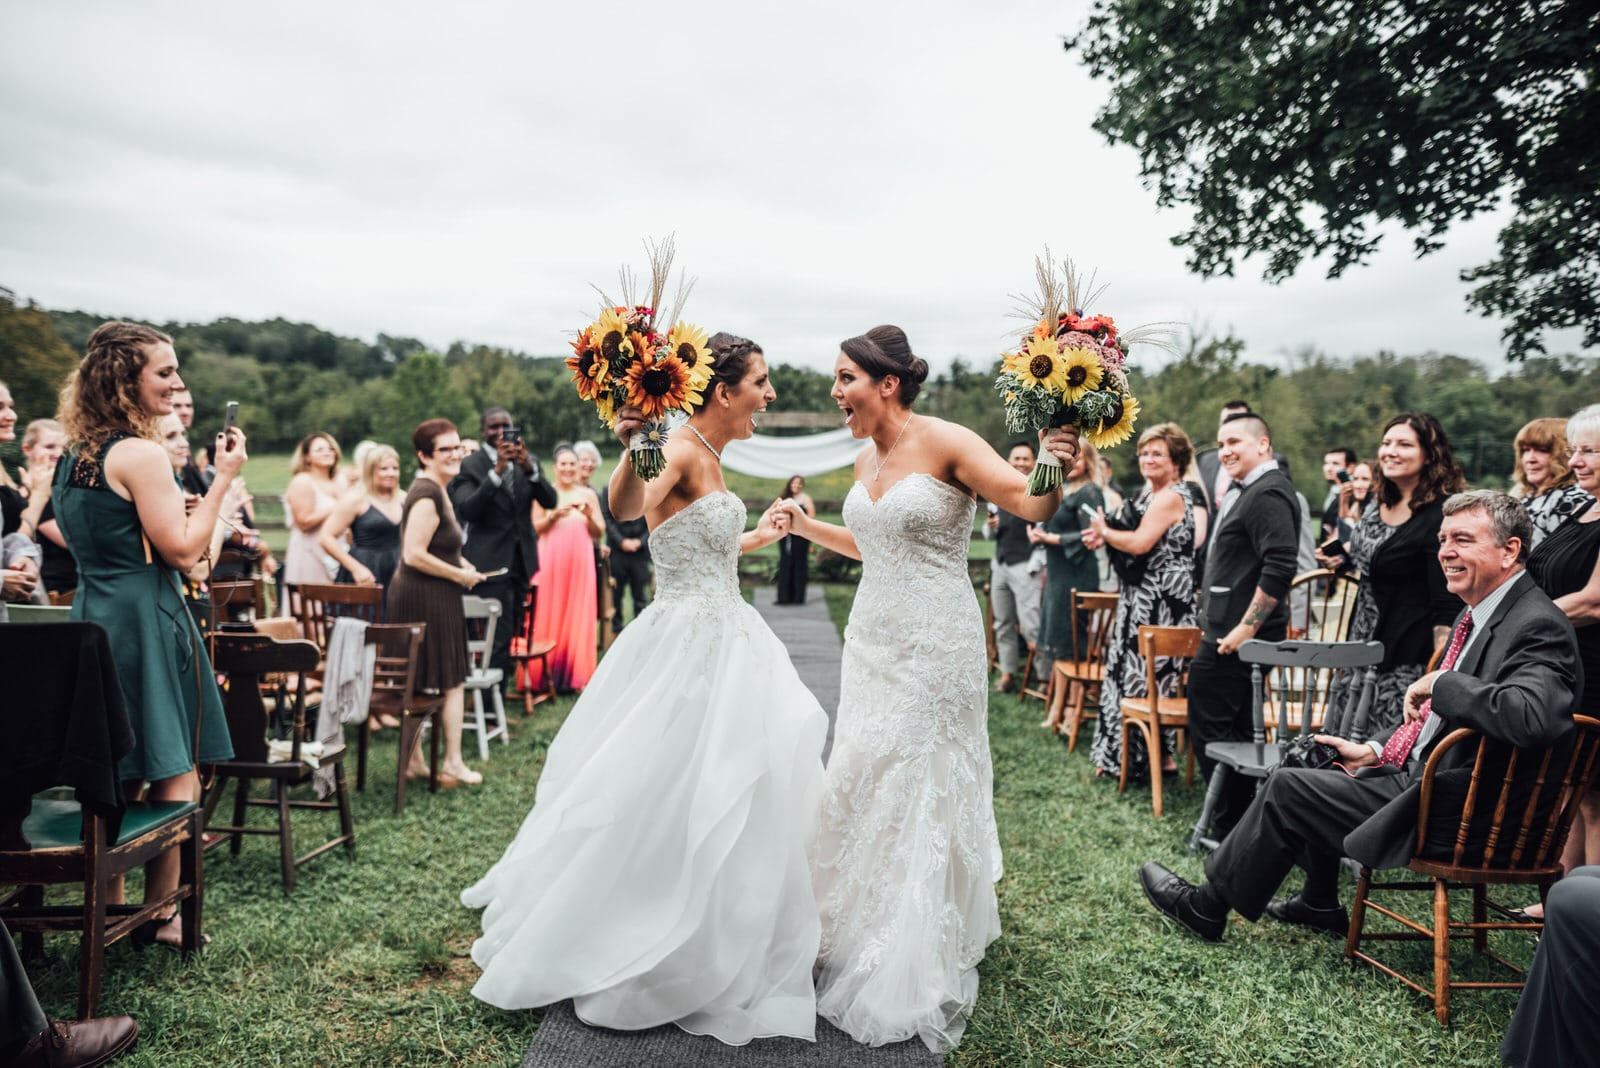 Durham Hill Farm - Barn Wedding Venue, Pipersville, PA